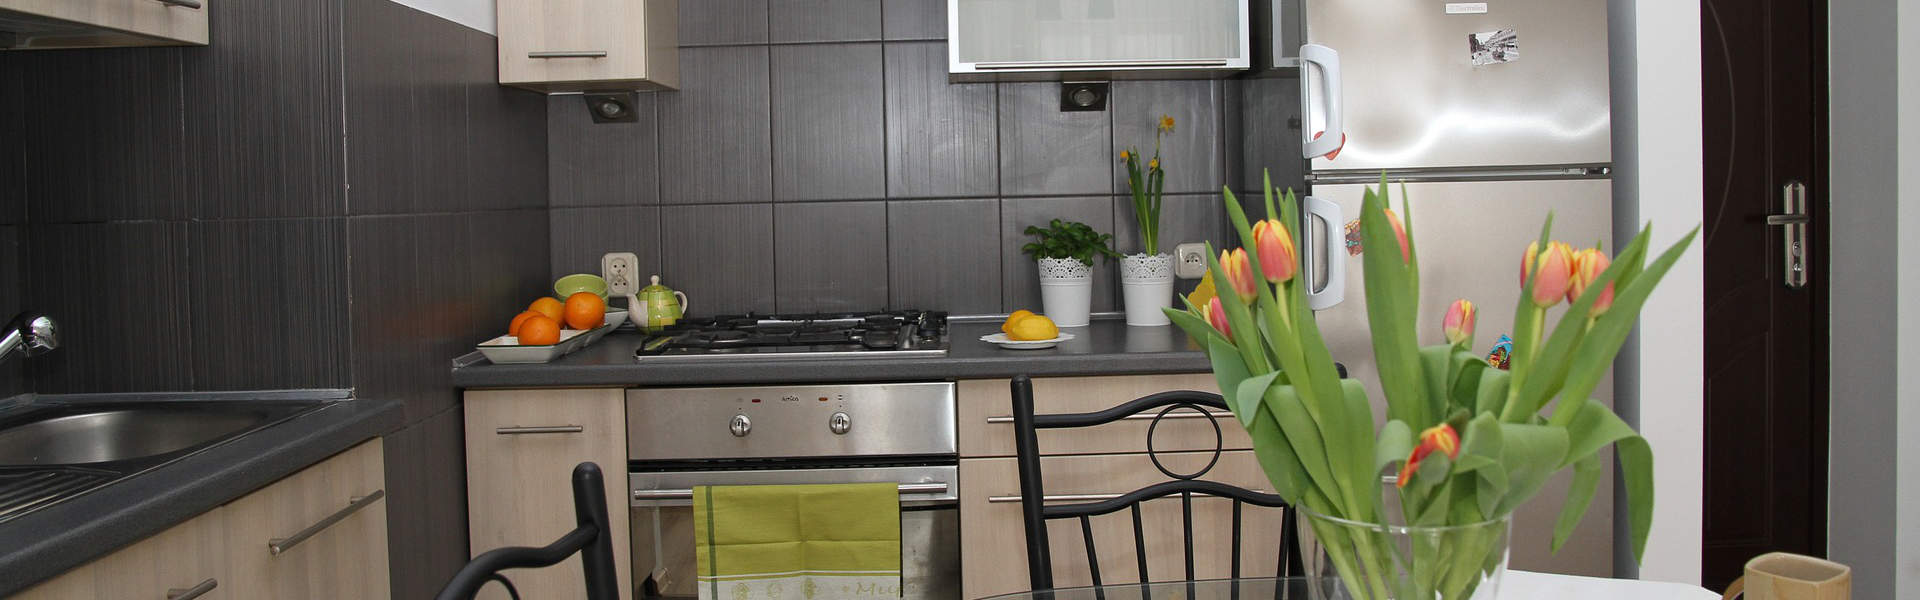 test-clean-modern-kitchen